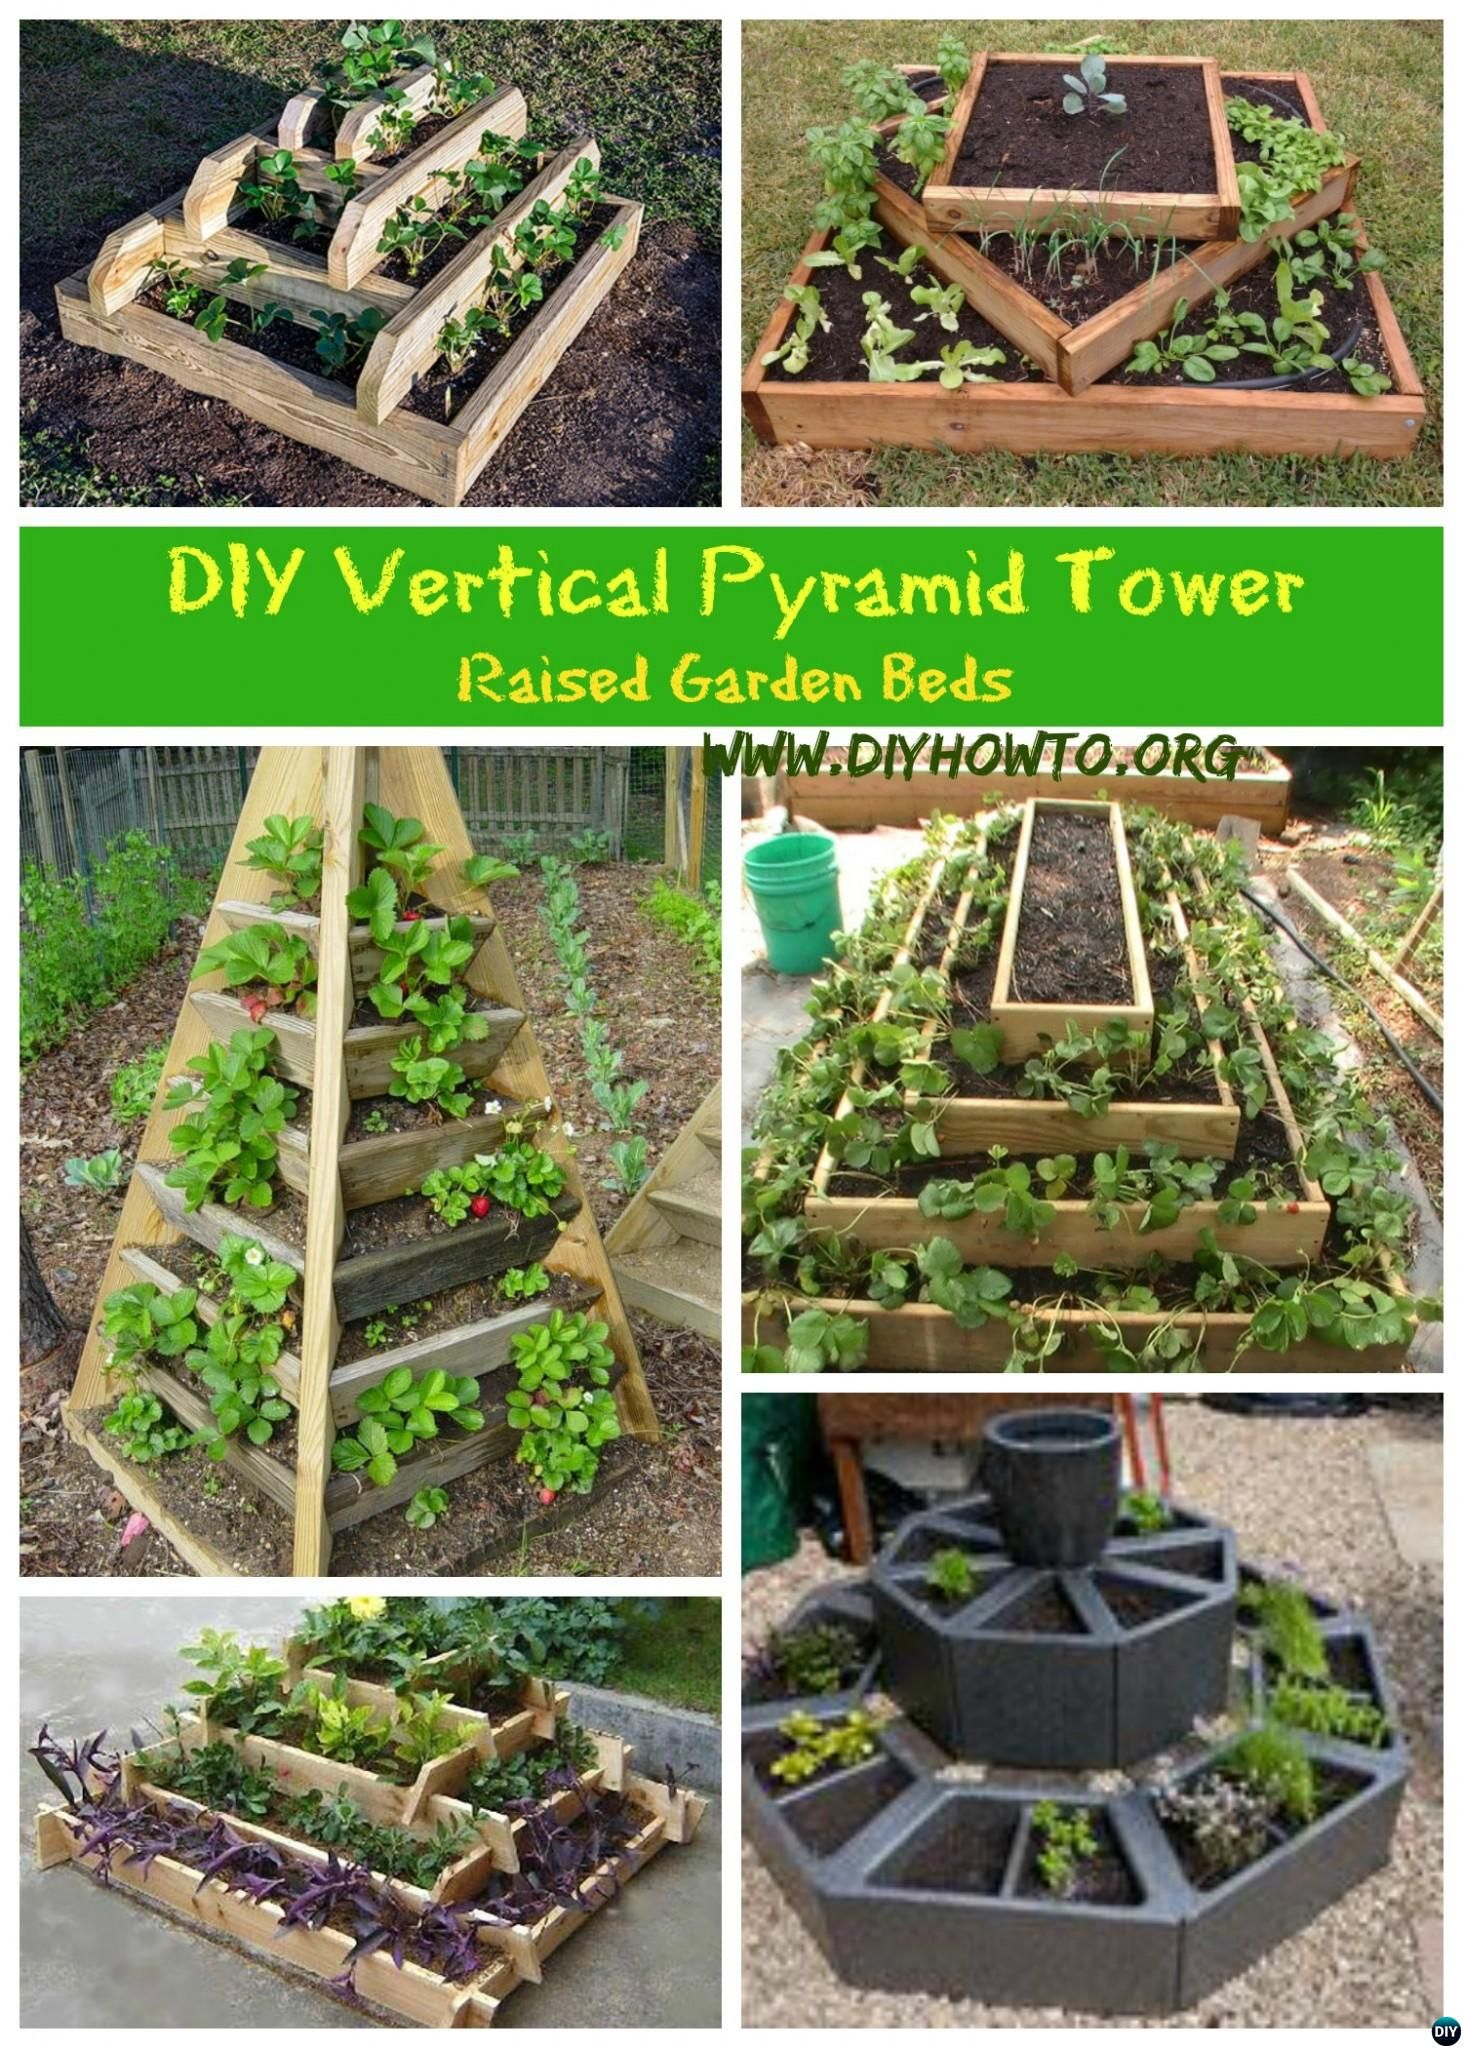 Diy vertical pyramid tower planters and raised garden beds for Garden planter plans